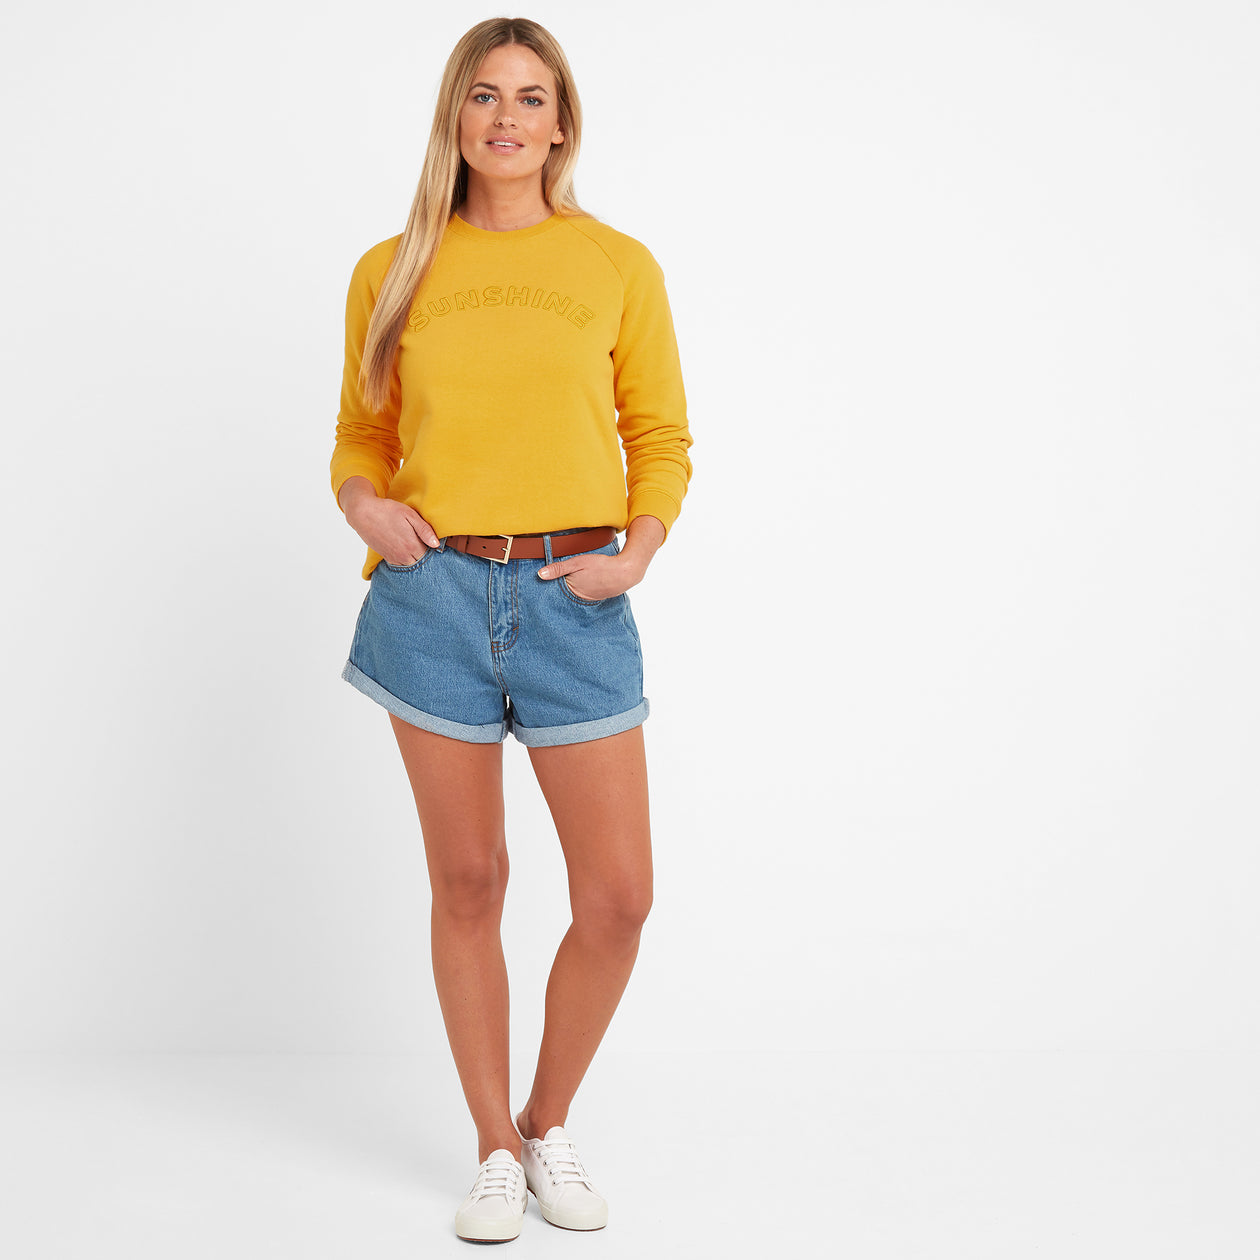 Faye Womens Crew Sweat - Sun Yellow image 4